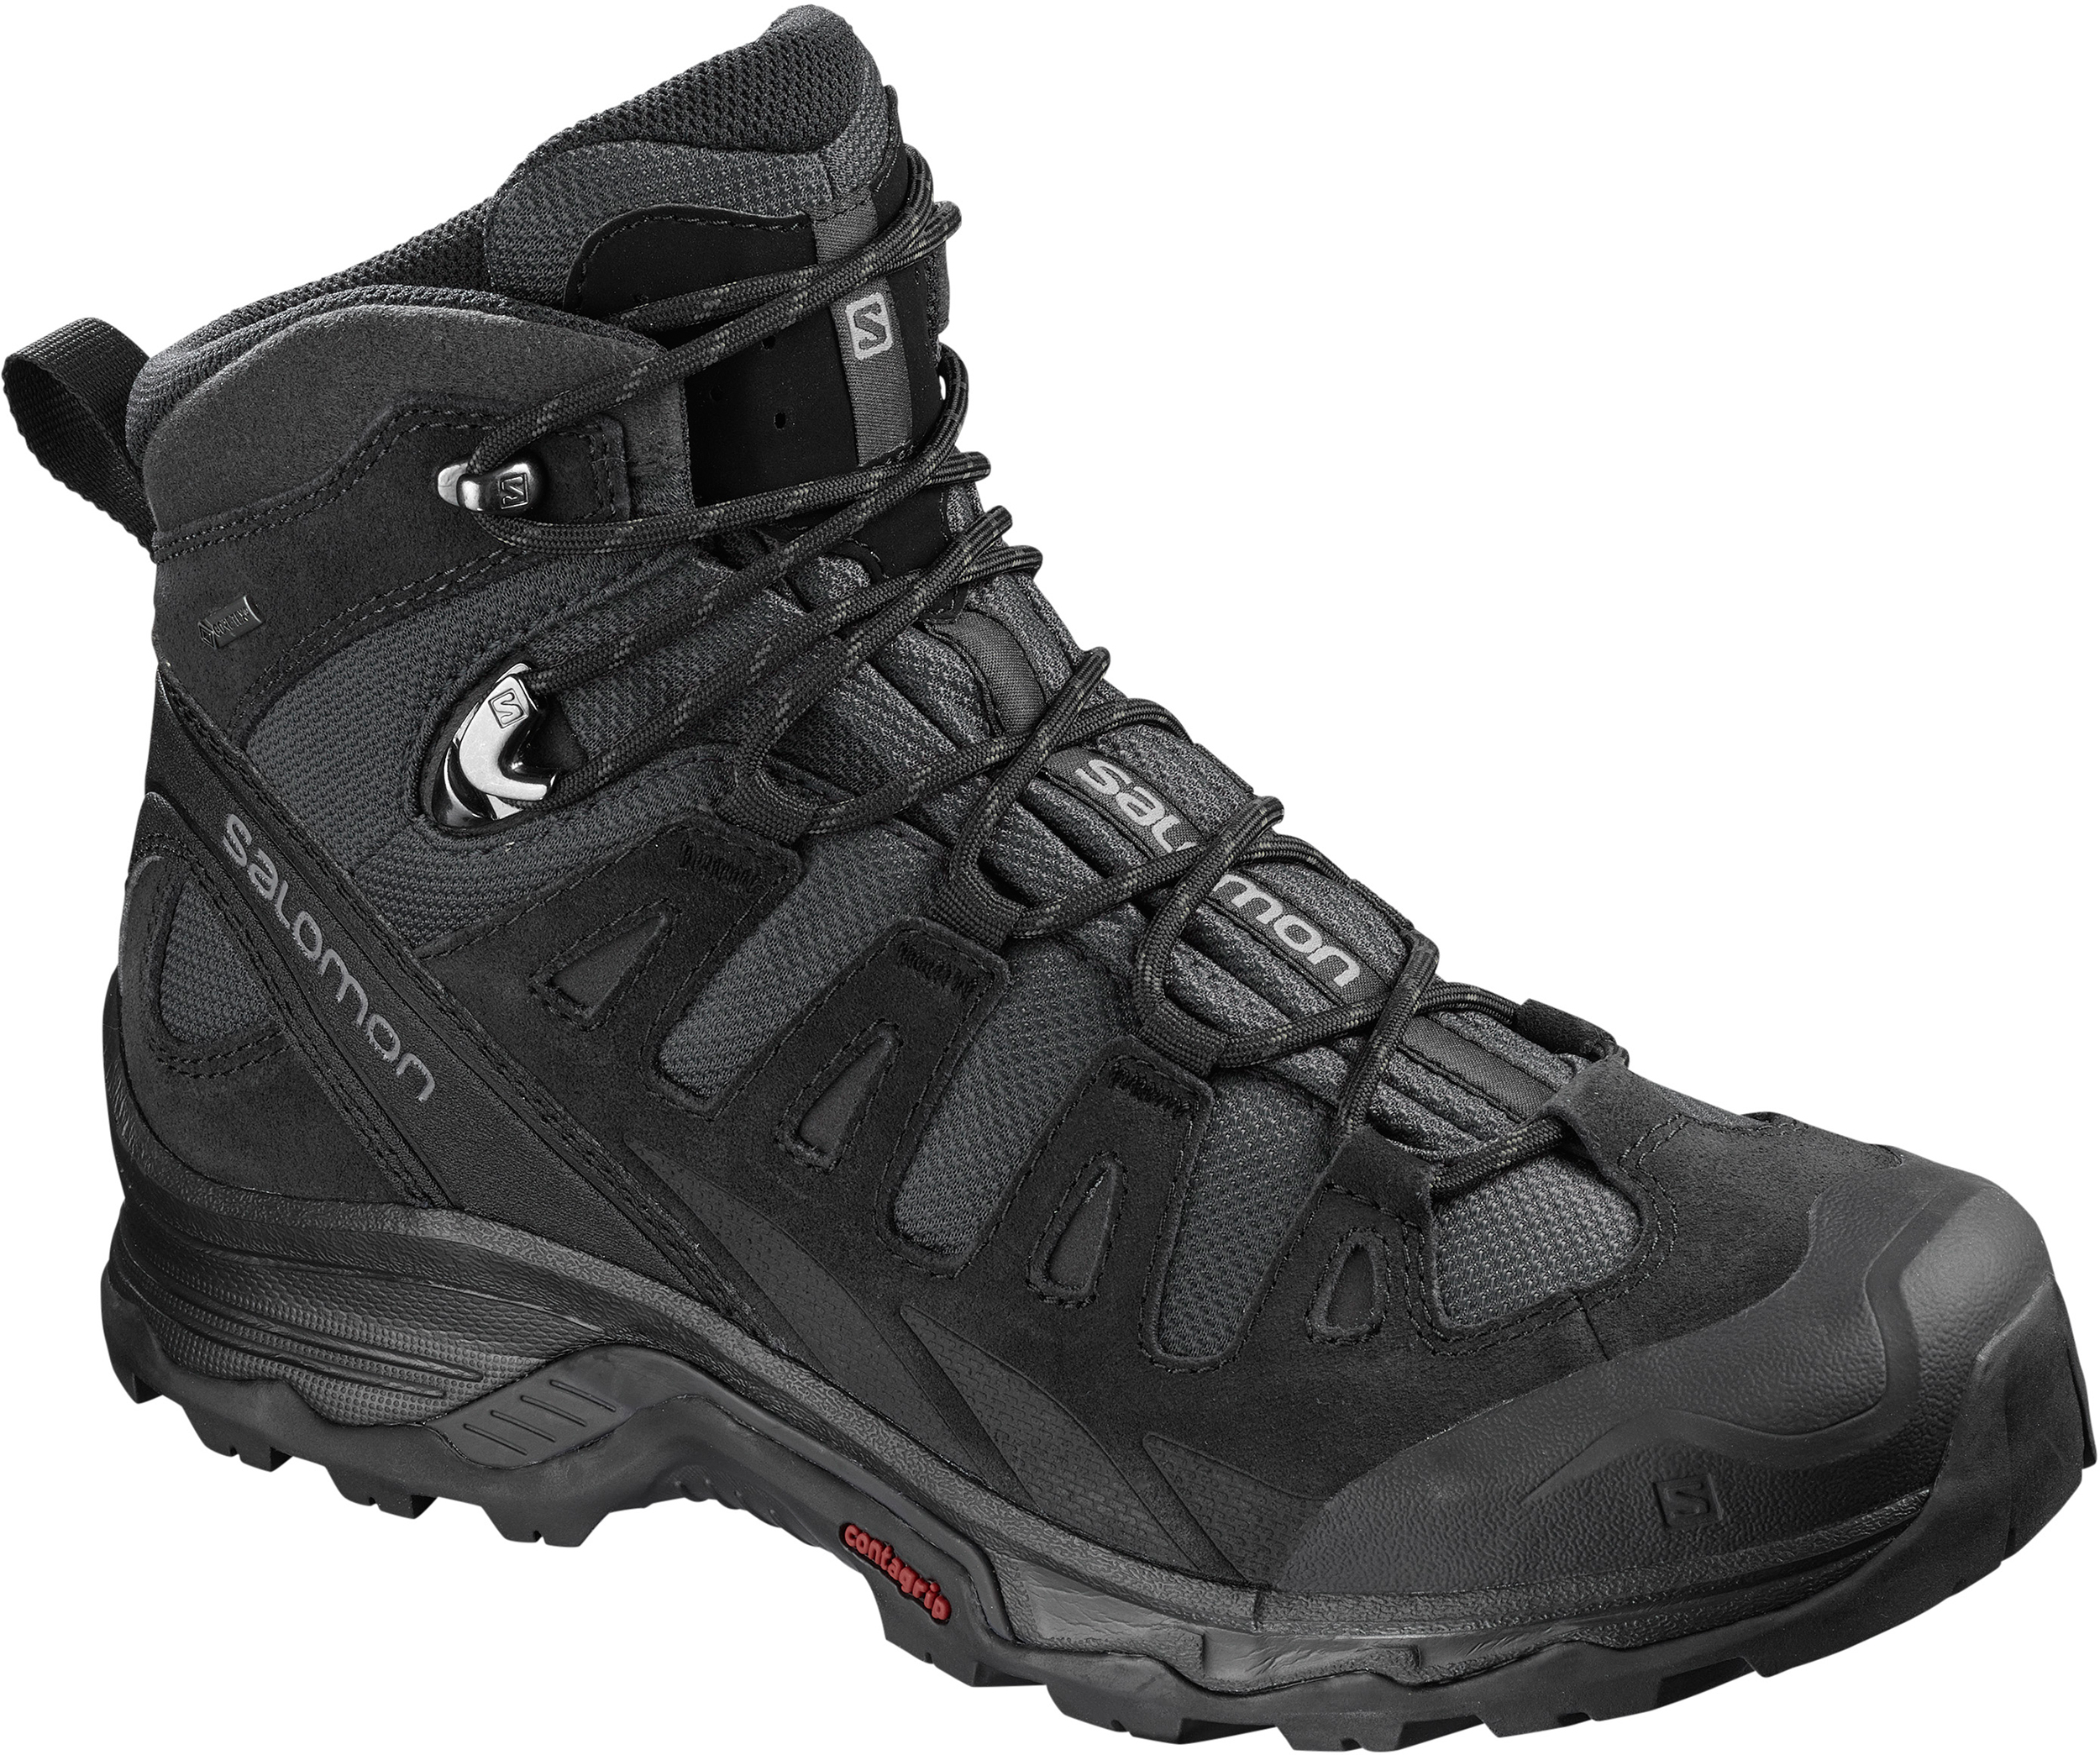 0fa22d0070 Salomon Quest Prime GTX Hiking Shoes - Men's